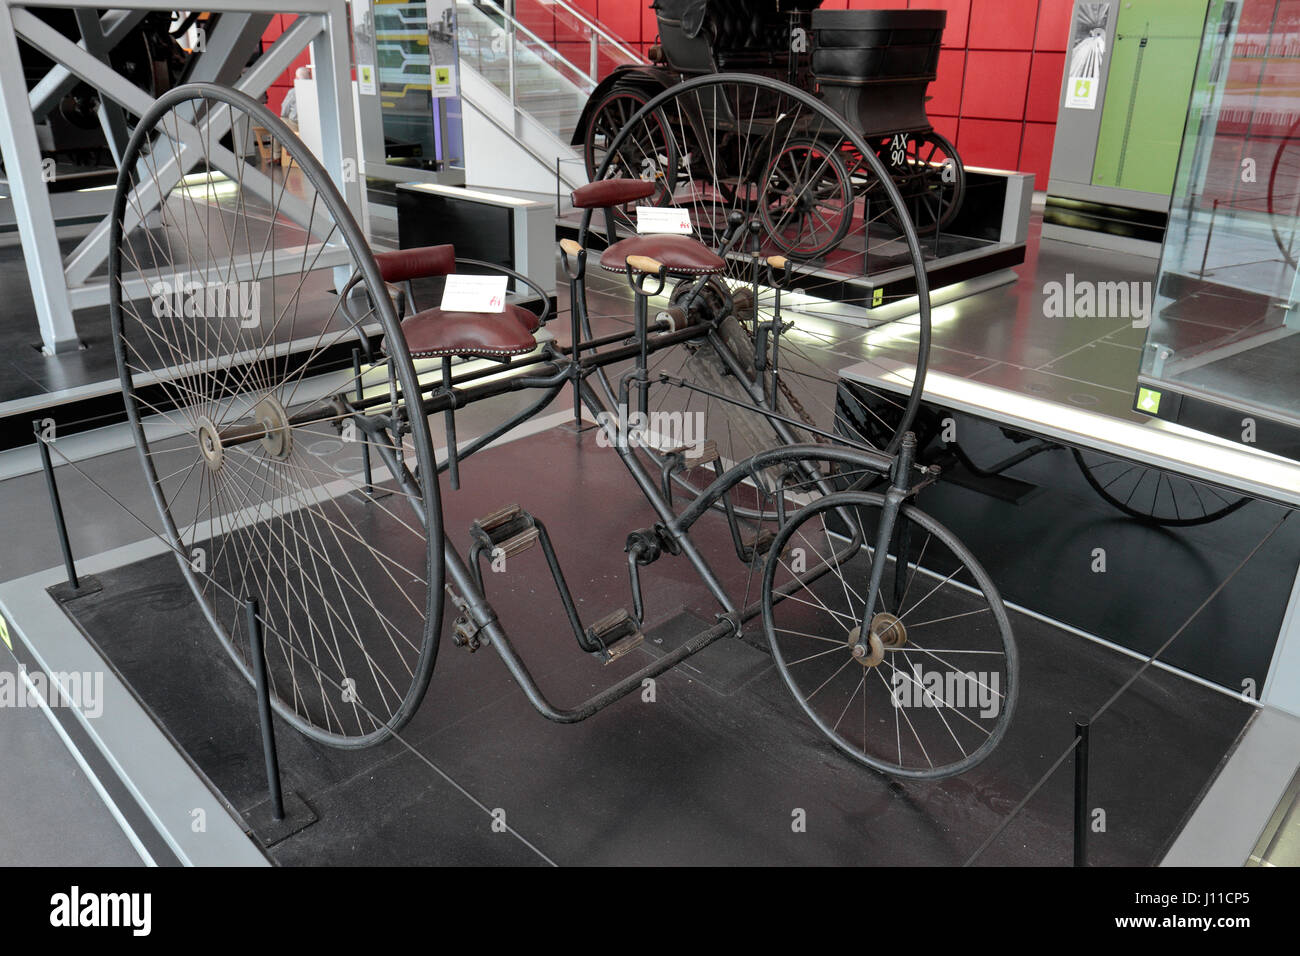 A Sociable tricycle on display in the National Waterfront Museum, Swansea, Wales. - Stock Image